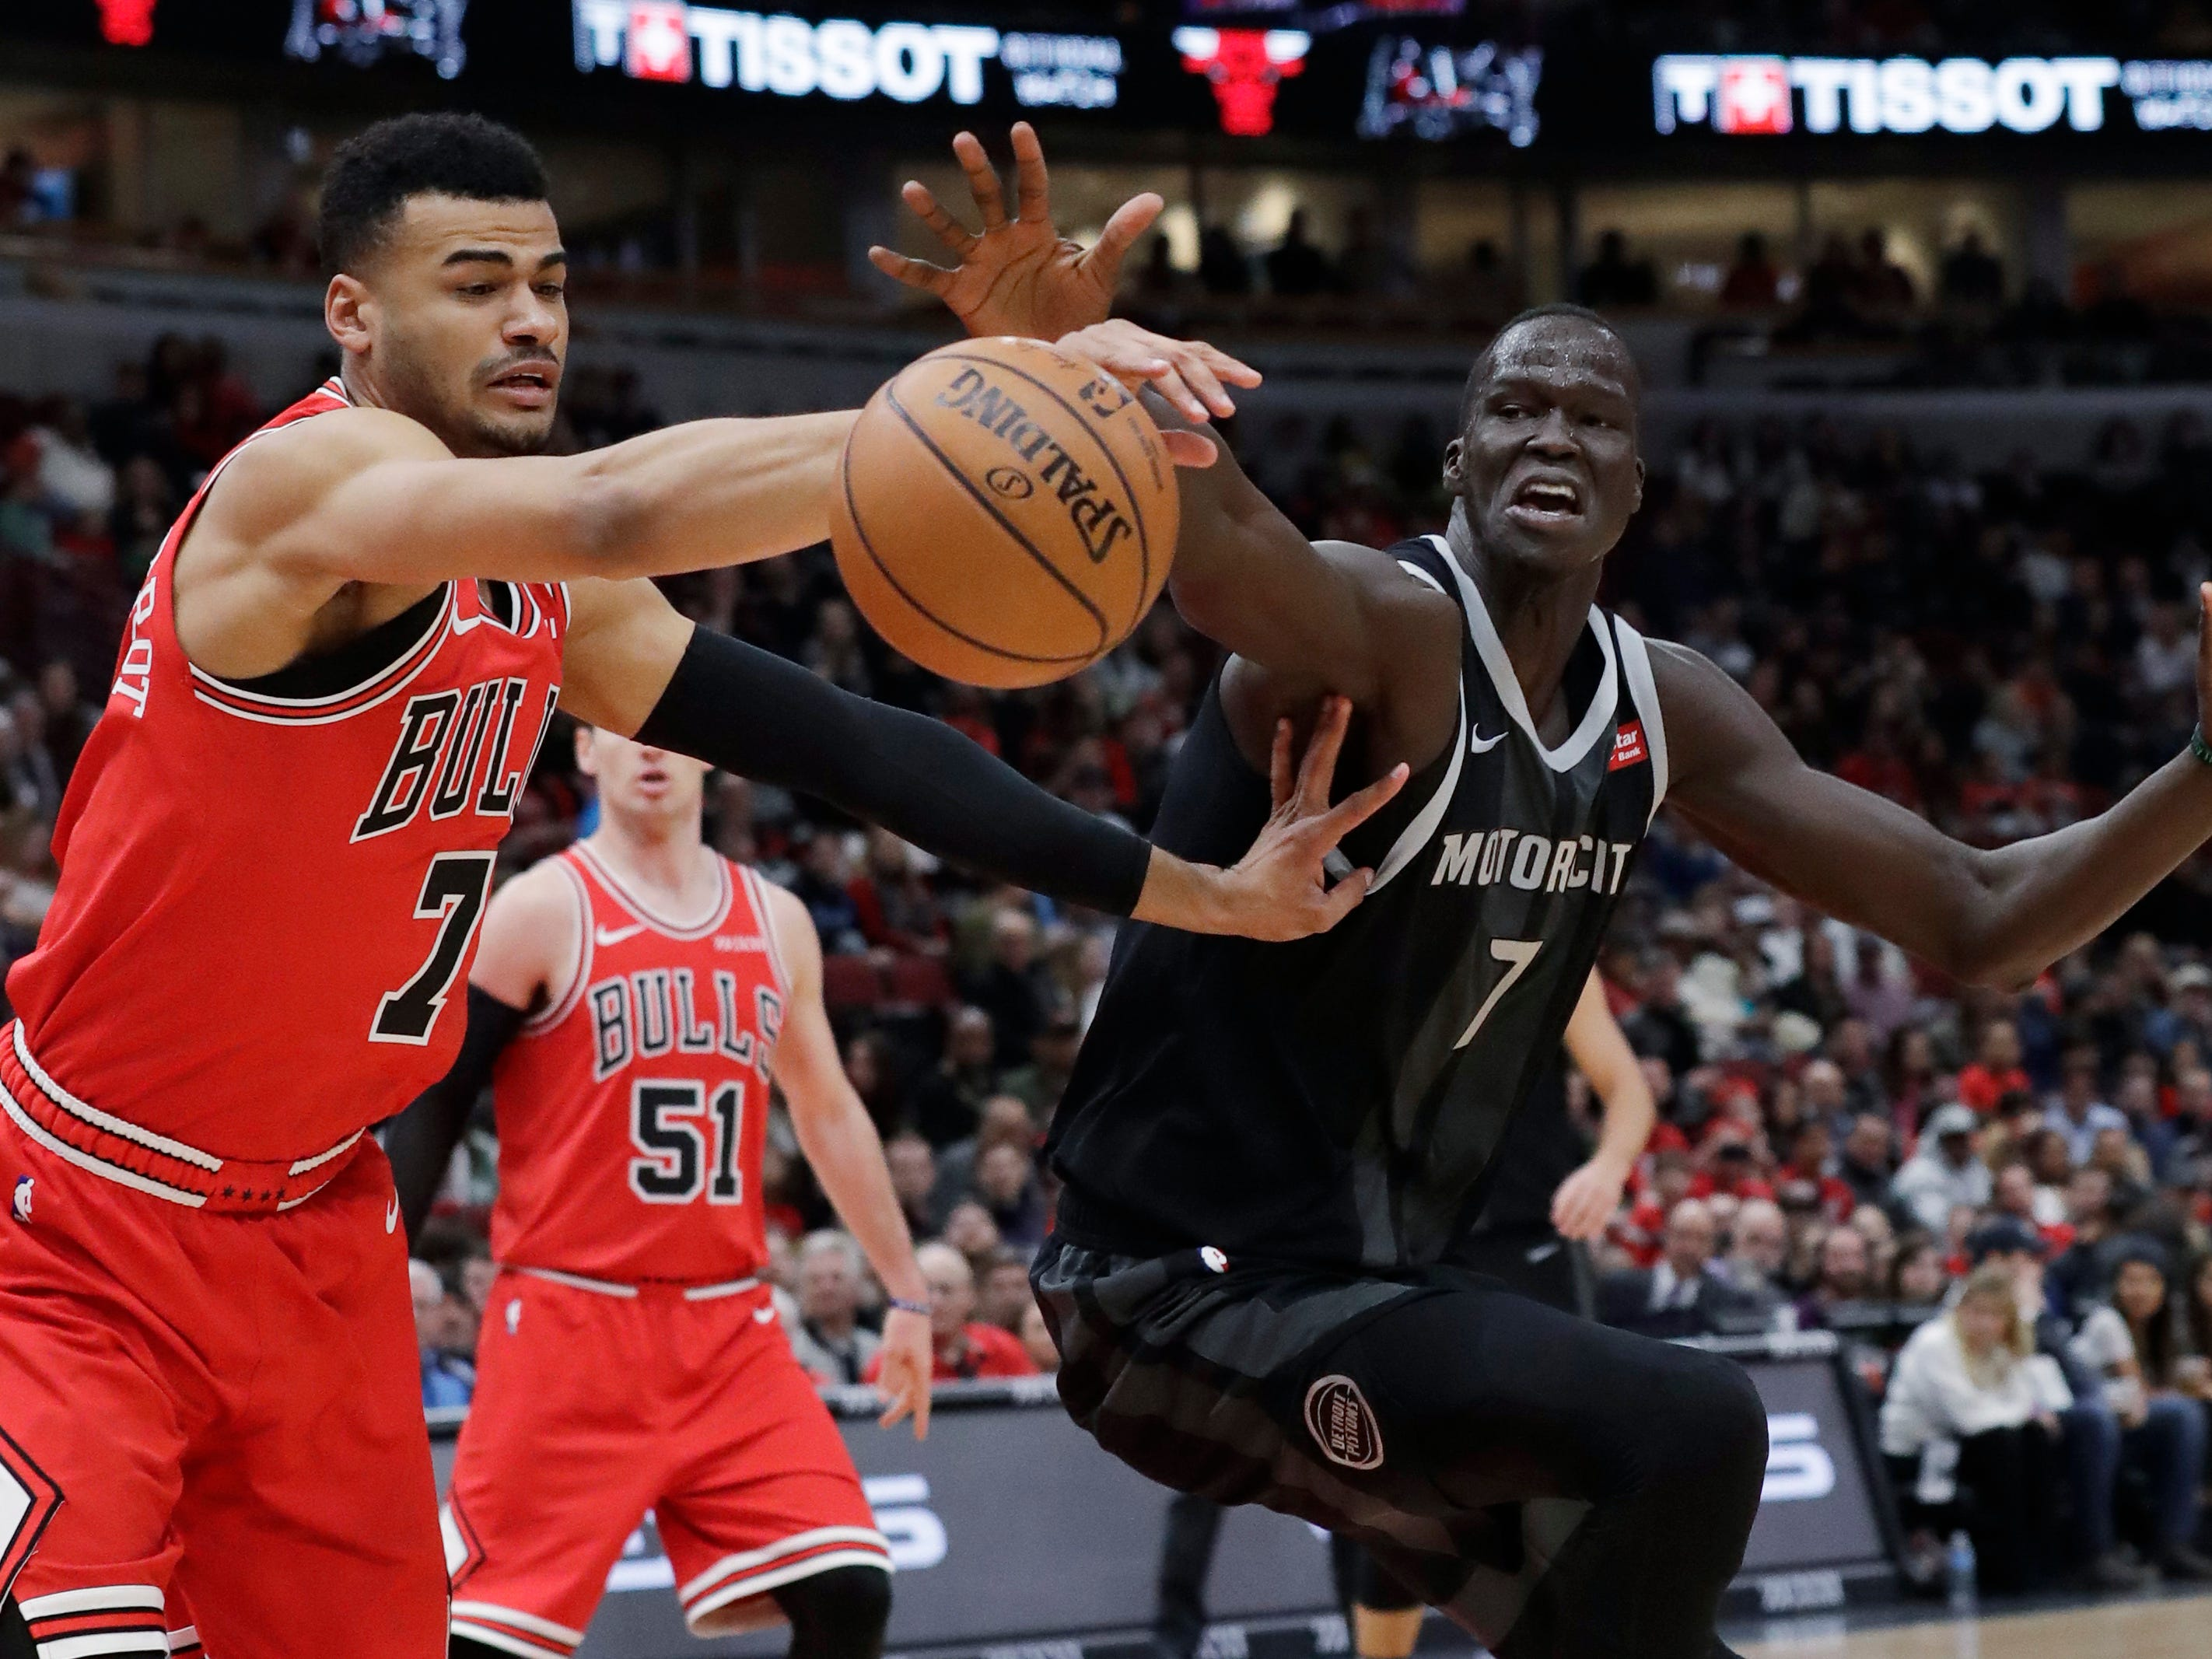 Chicago Bulls guard/forward Timothy Luwawu-Cabarrot, left, and Detroit Pistons forward Thon Maker reach for the ball during the first half of an NBA basketball game Friday, March 8, 2019, in Chicago.